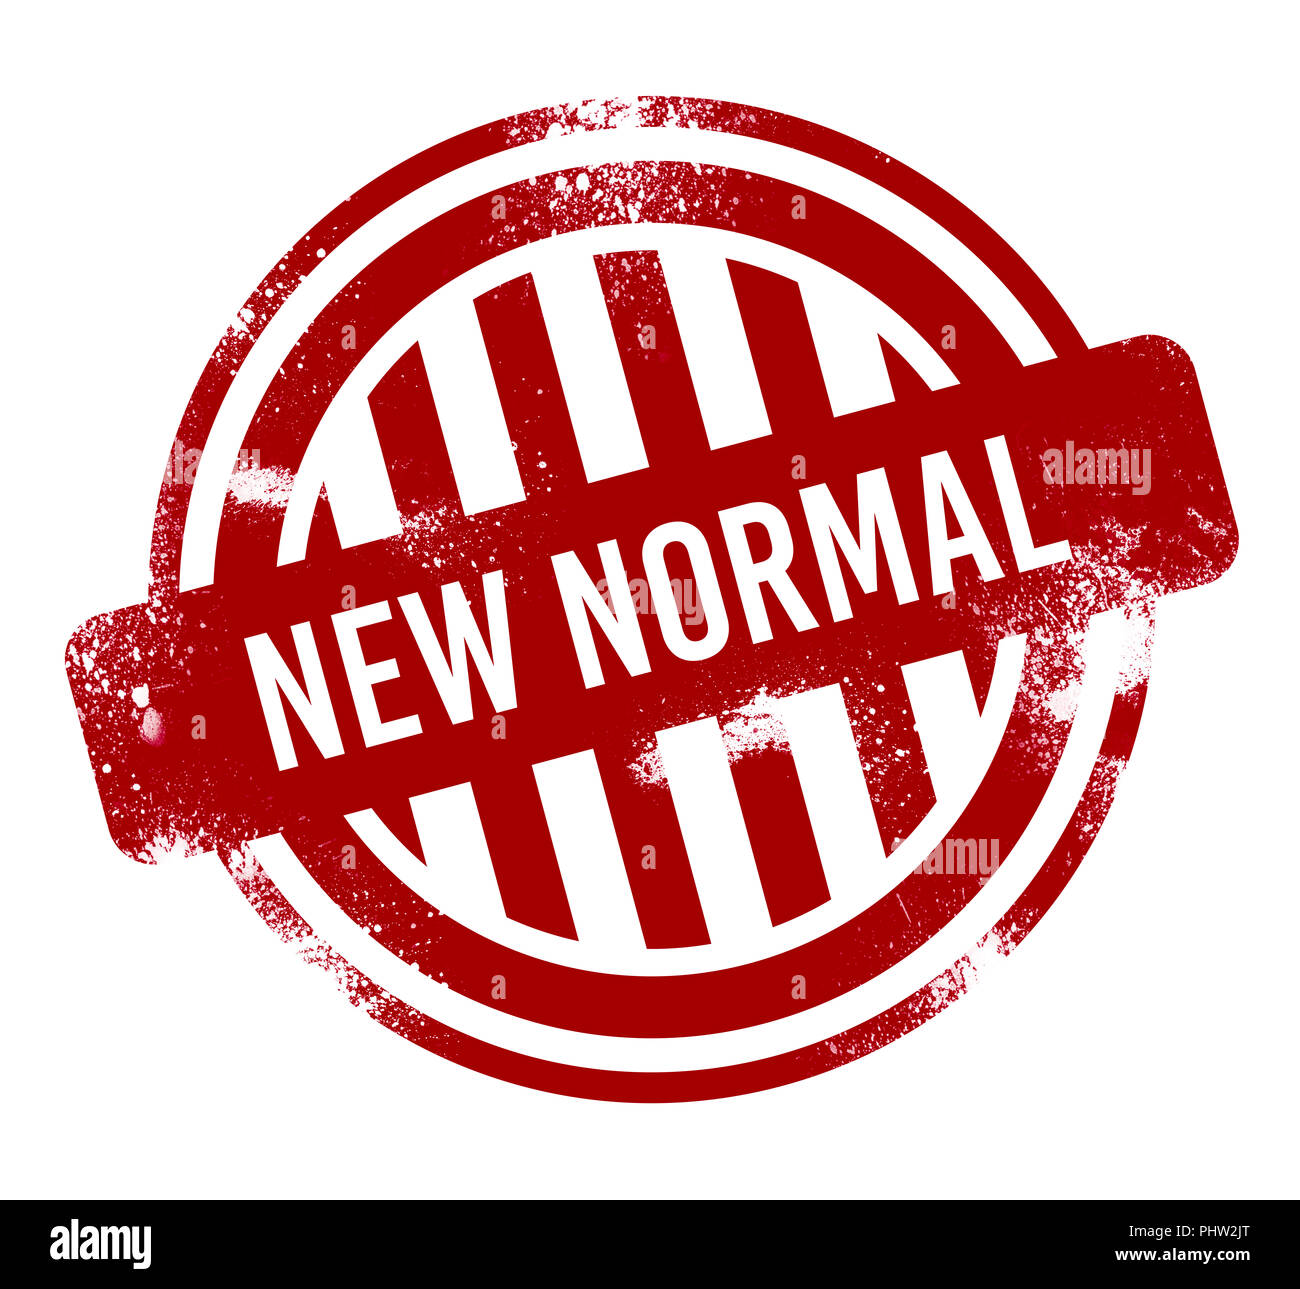 New Normal Red Grunge Button Stamp Stock Photo 217524464 Alamy